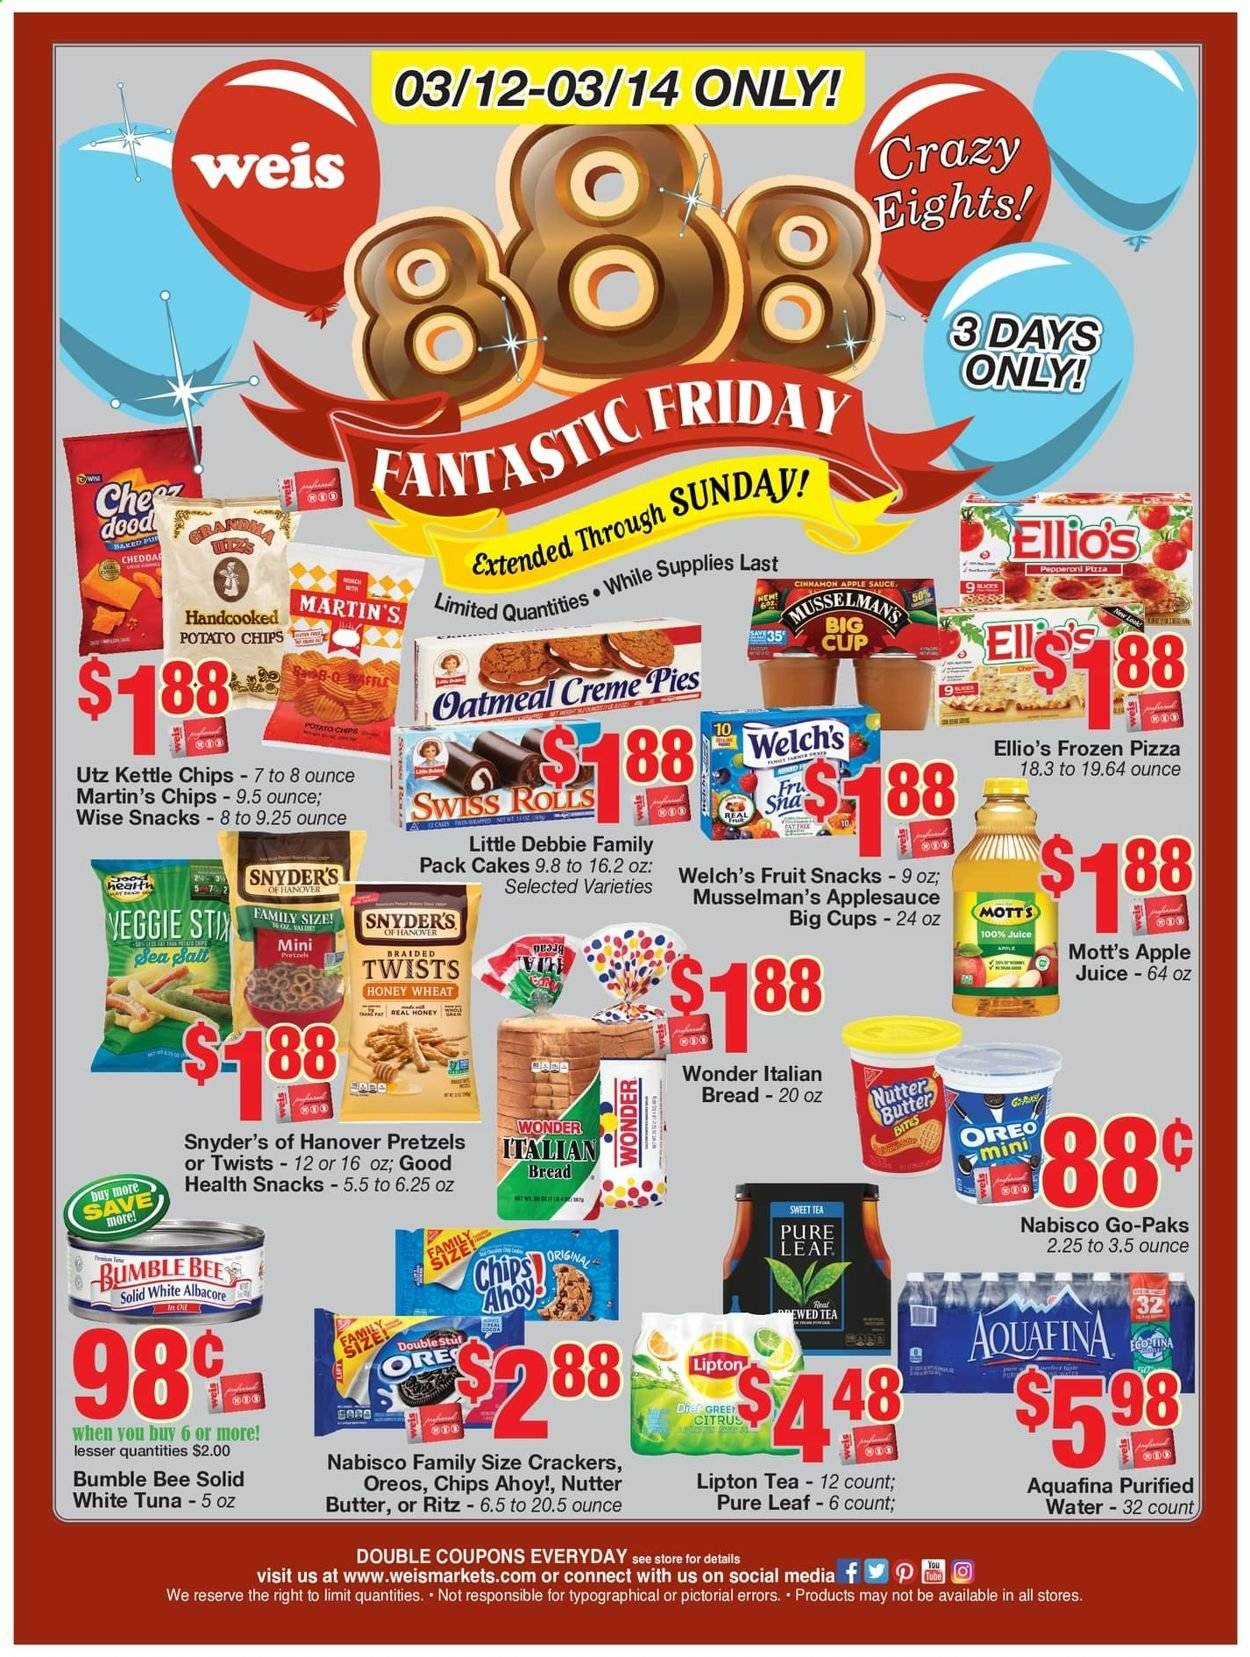 Weis Flyer - 03.12.2021 - 03.14.2021 - Sales products - bread, pretzels, rolls, cake, tuna, pizza, Welch's, Oreo, butter, crackers, fruit snacks, Chips Ahoy!, RITZ, potato chips, oatmeal, sea salt, cinnamon, apple sauce, apple juice, juice, Lipton, Mott's, Aquafina, purified water, tea, Pure Leaf, cup, water. Page 1.